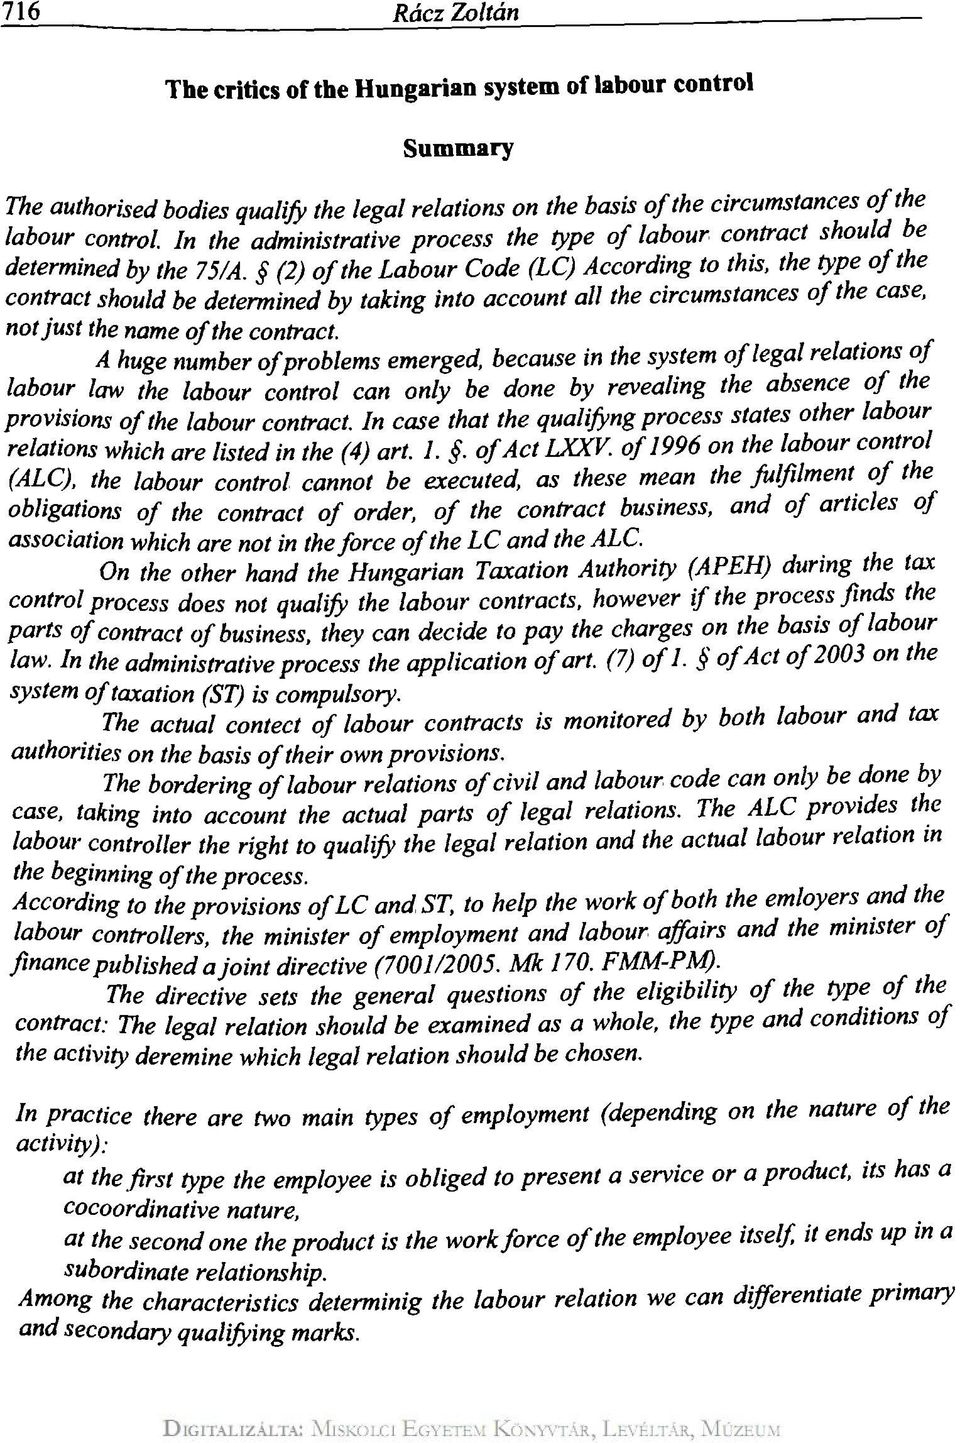 (2) of the Labour Code (LC) According to this, the type of the contract should be determined by taking into account all the circumstances of the case, not just the name of the contract.